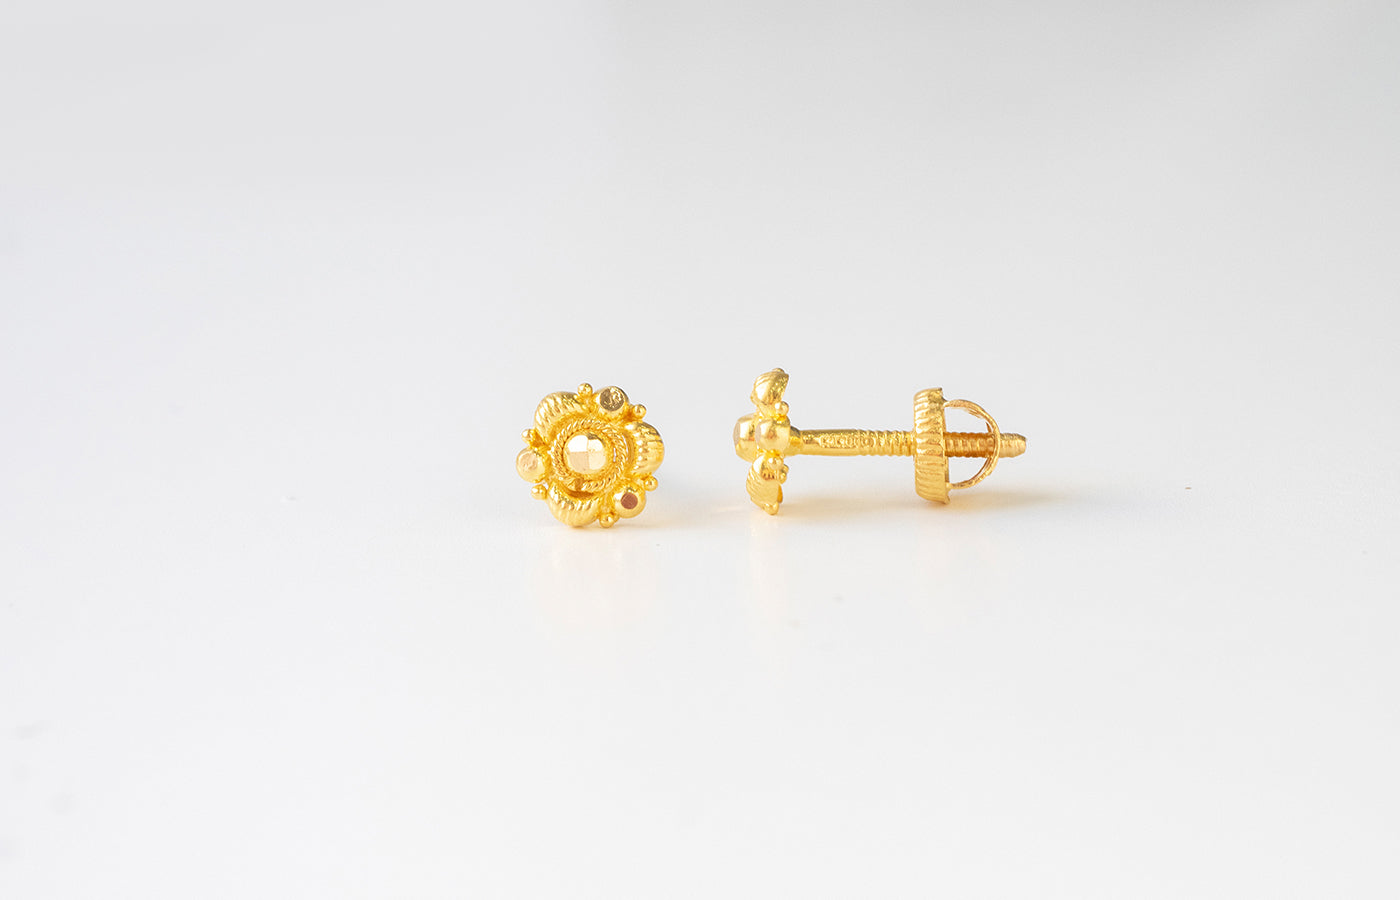 22ct Gold Diamond Cut Ear Studs (1.2g) E-7766